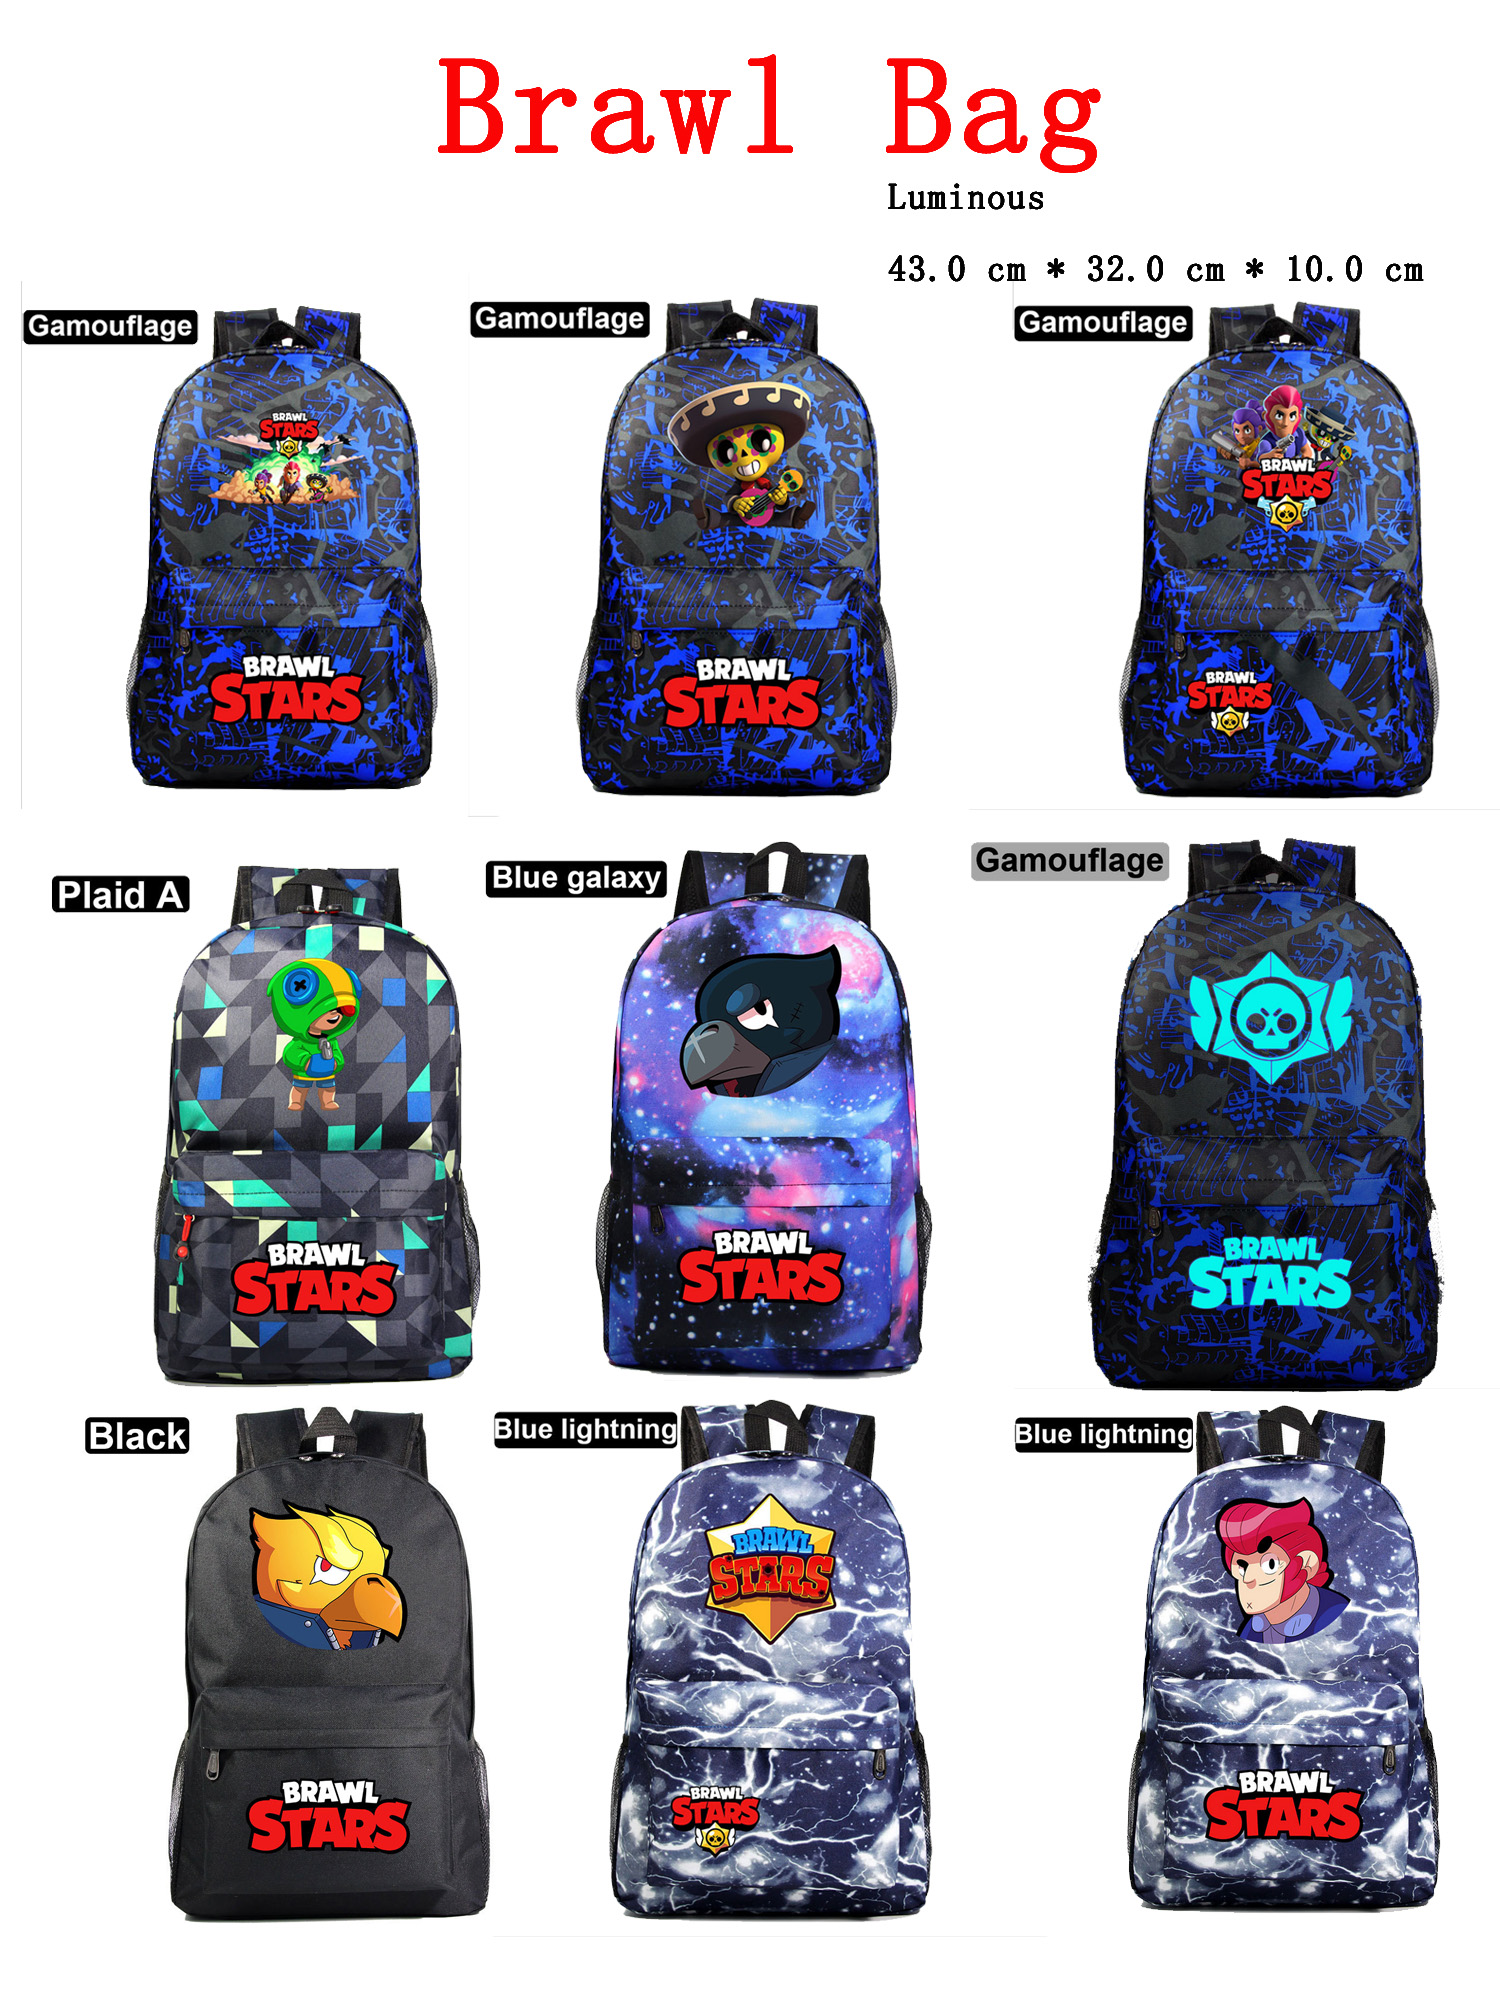 Brawling Game Stars Schoolbag Luminous Student School Backpack Waterproof Bagpack Primary School Book Bags For Teenage Girl Kids